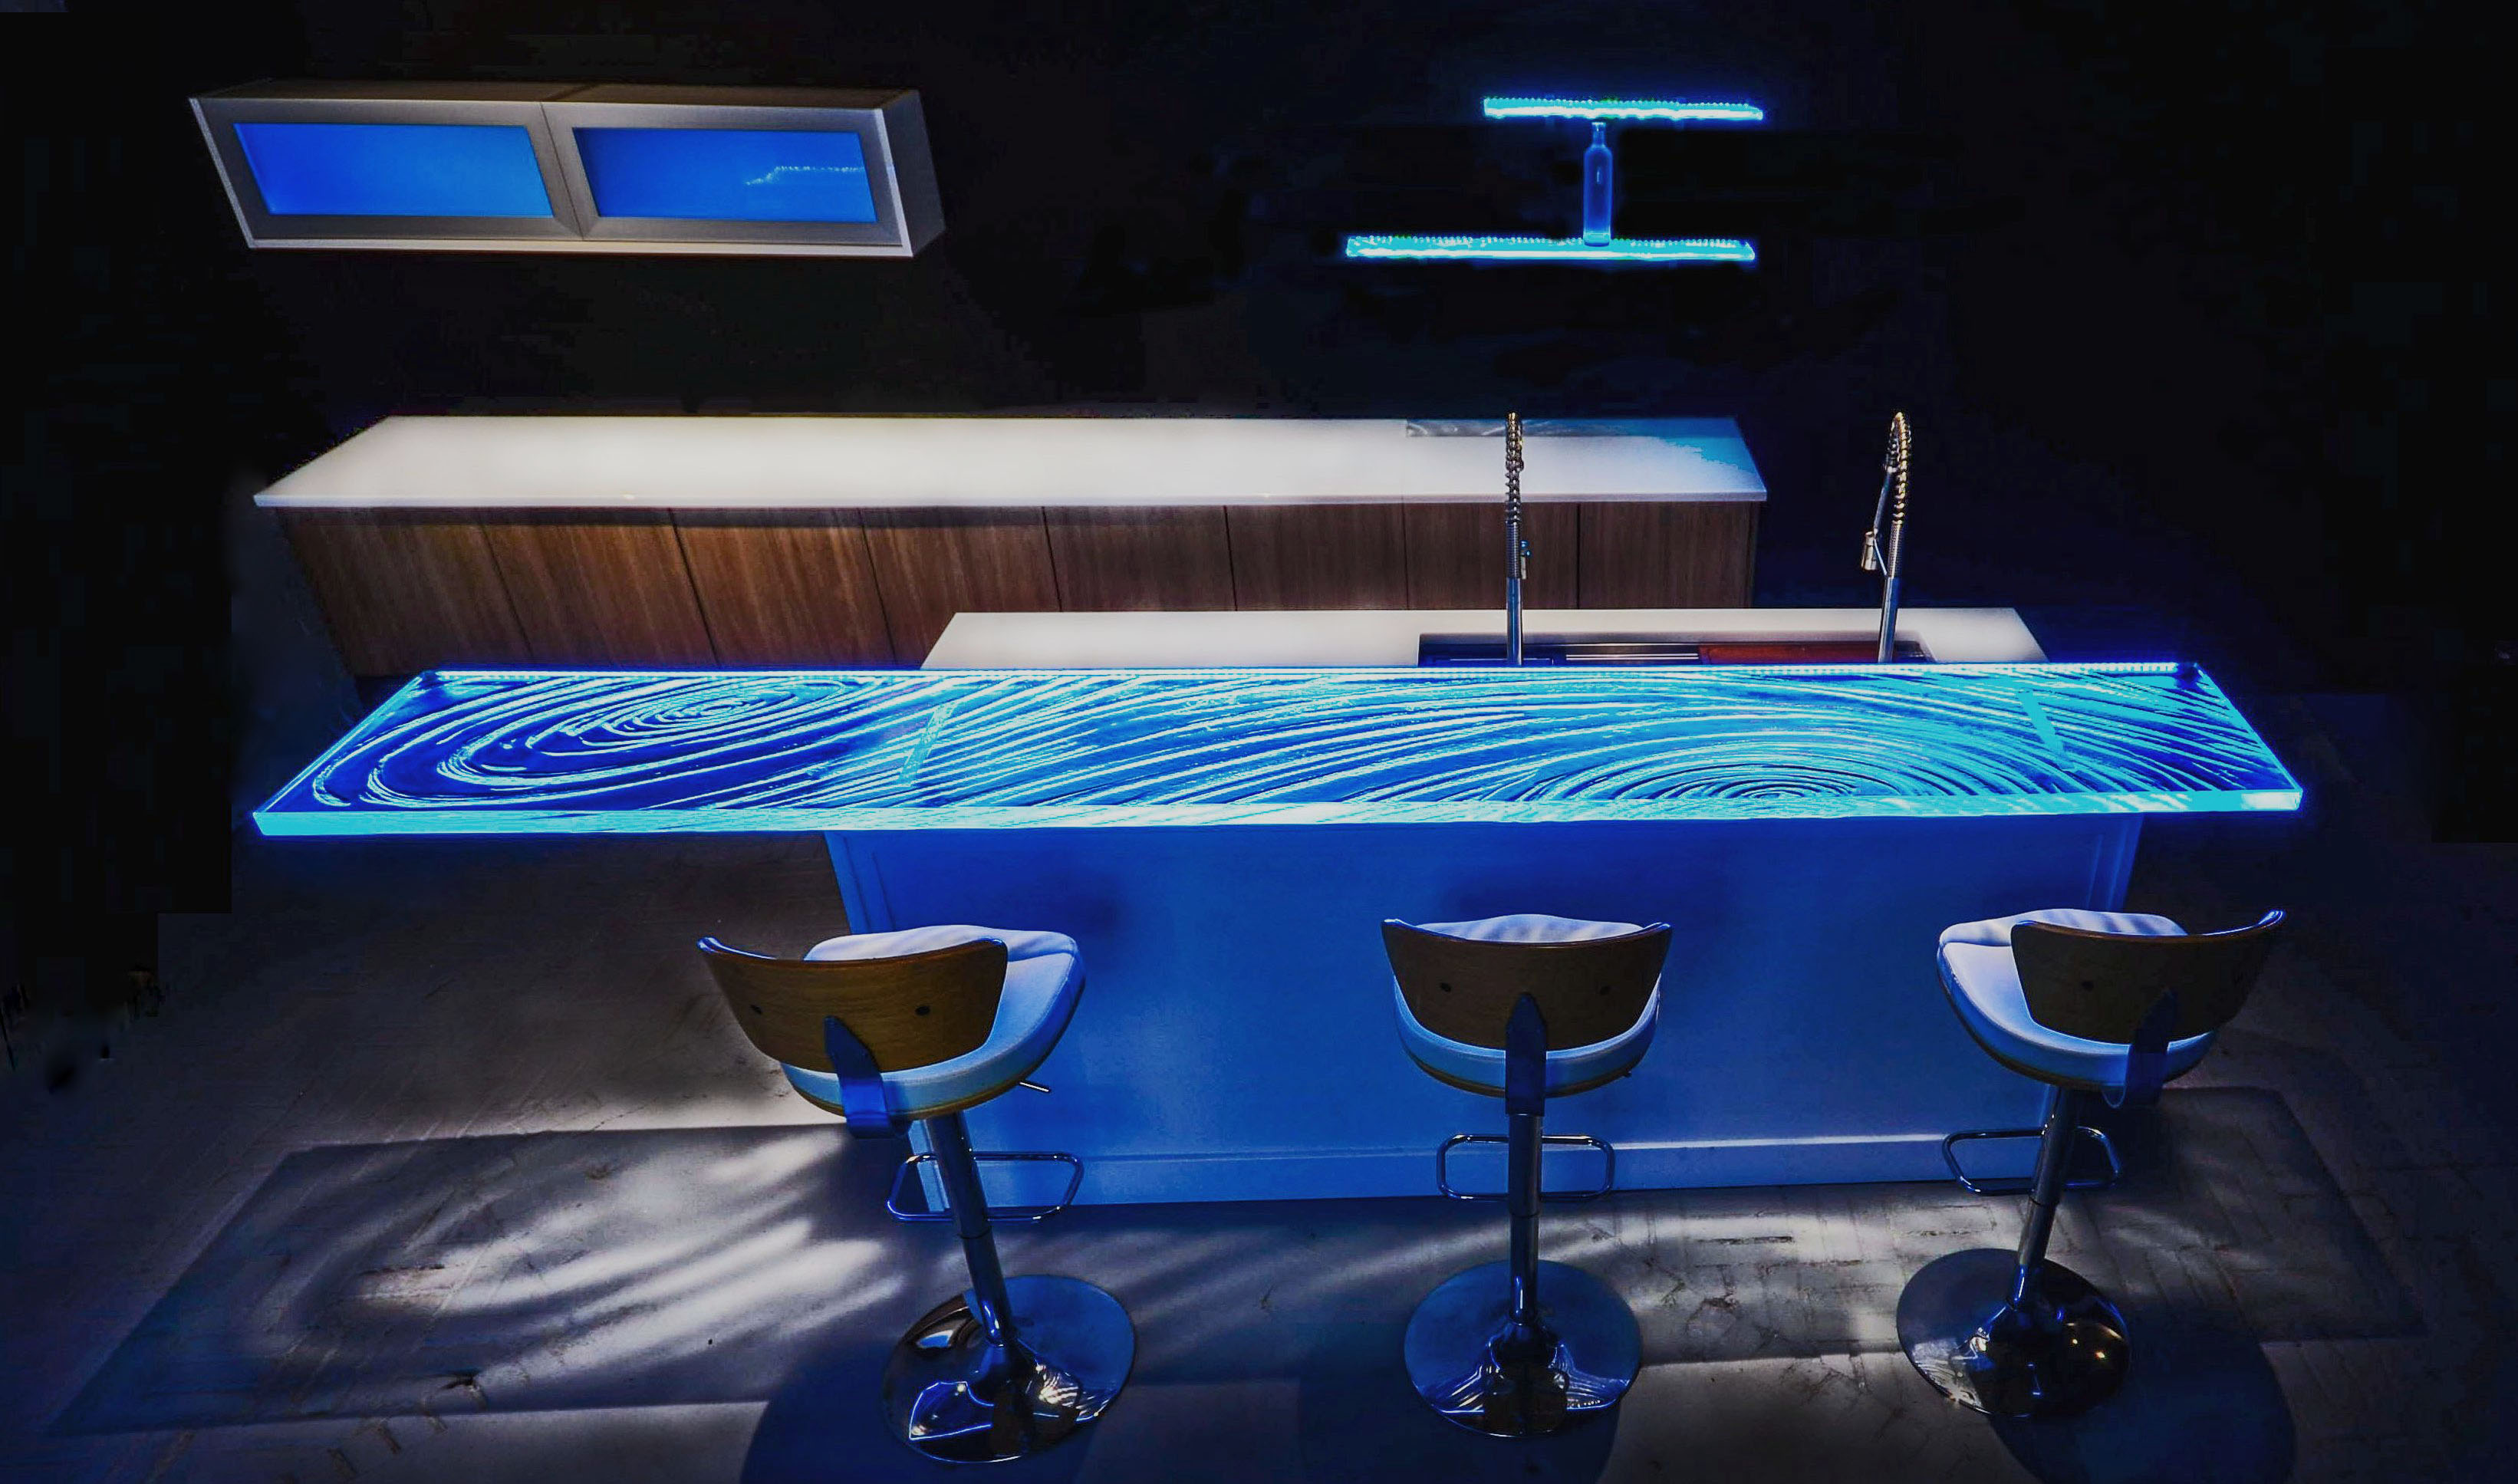 Dazzling Glass Countertop High bar at Downing Designs in Tampa,FL: